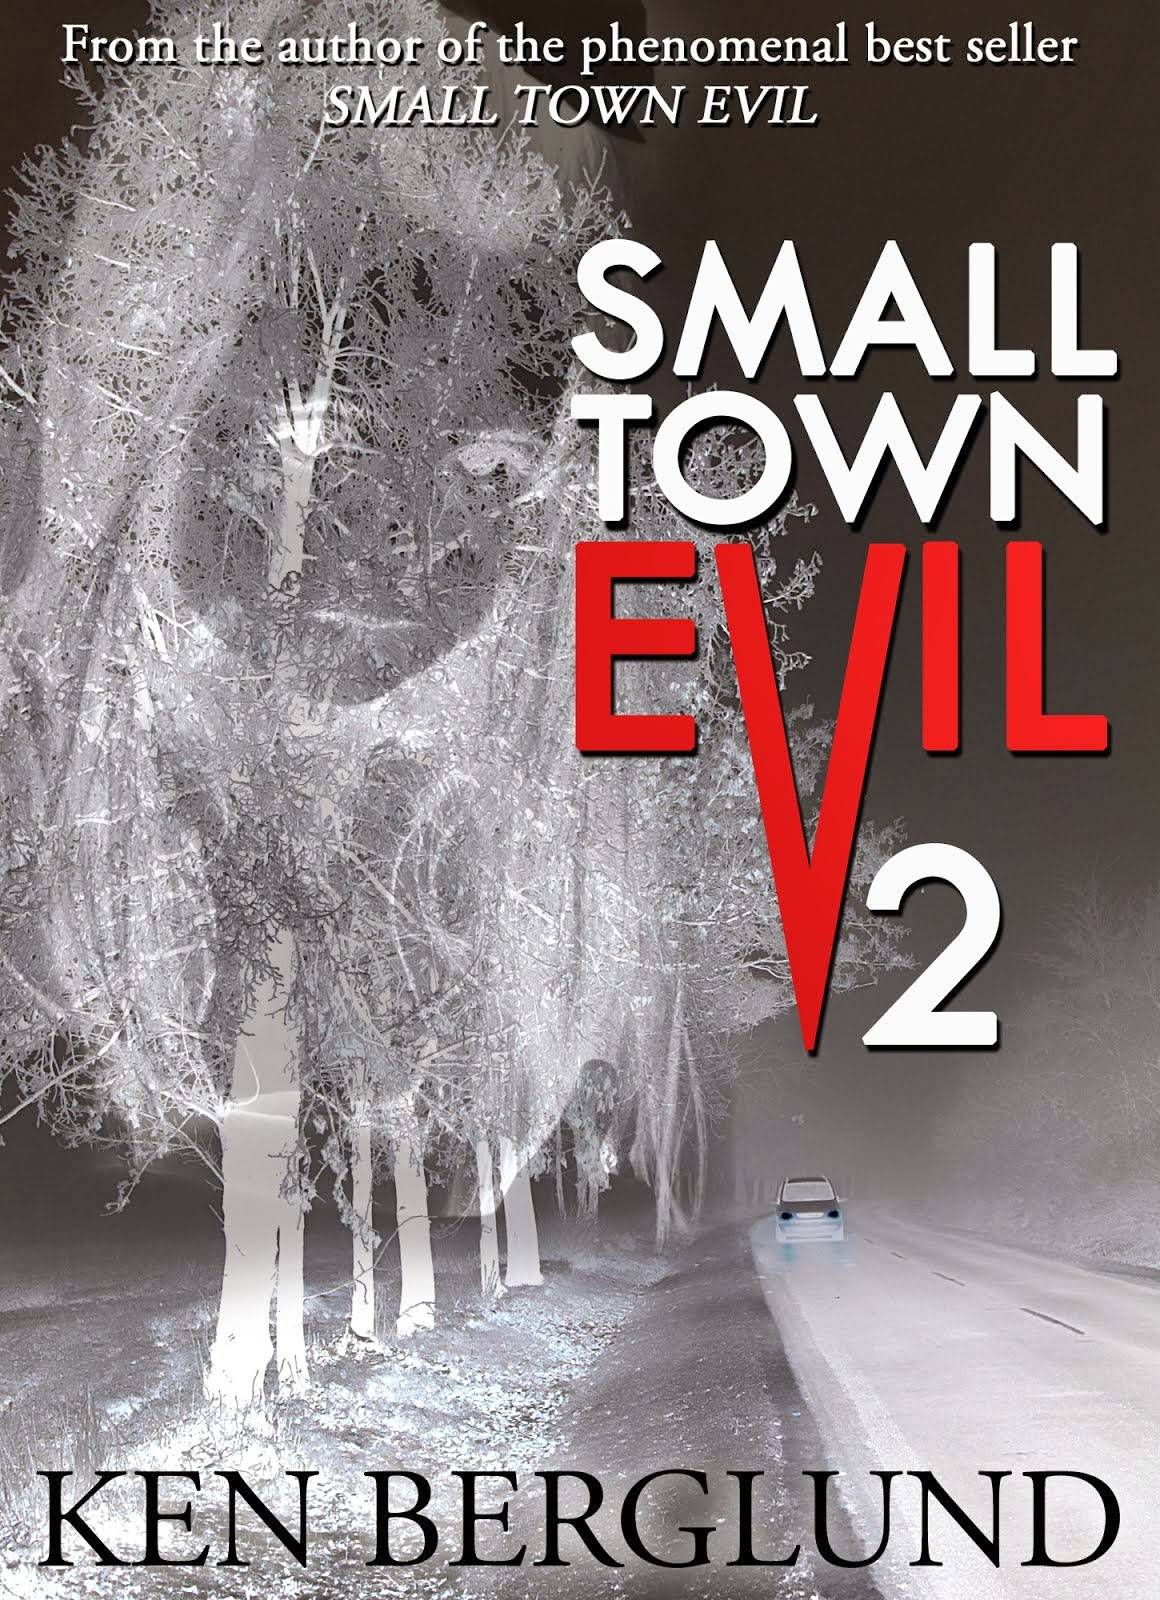 Small Town Evil 2